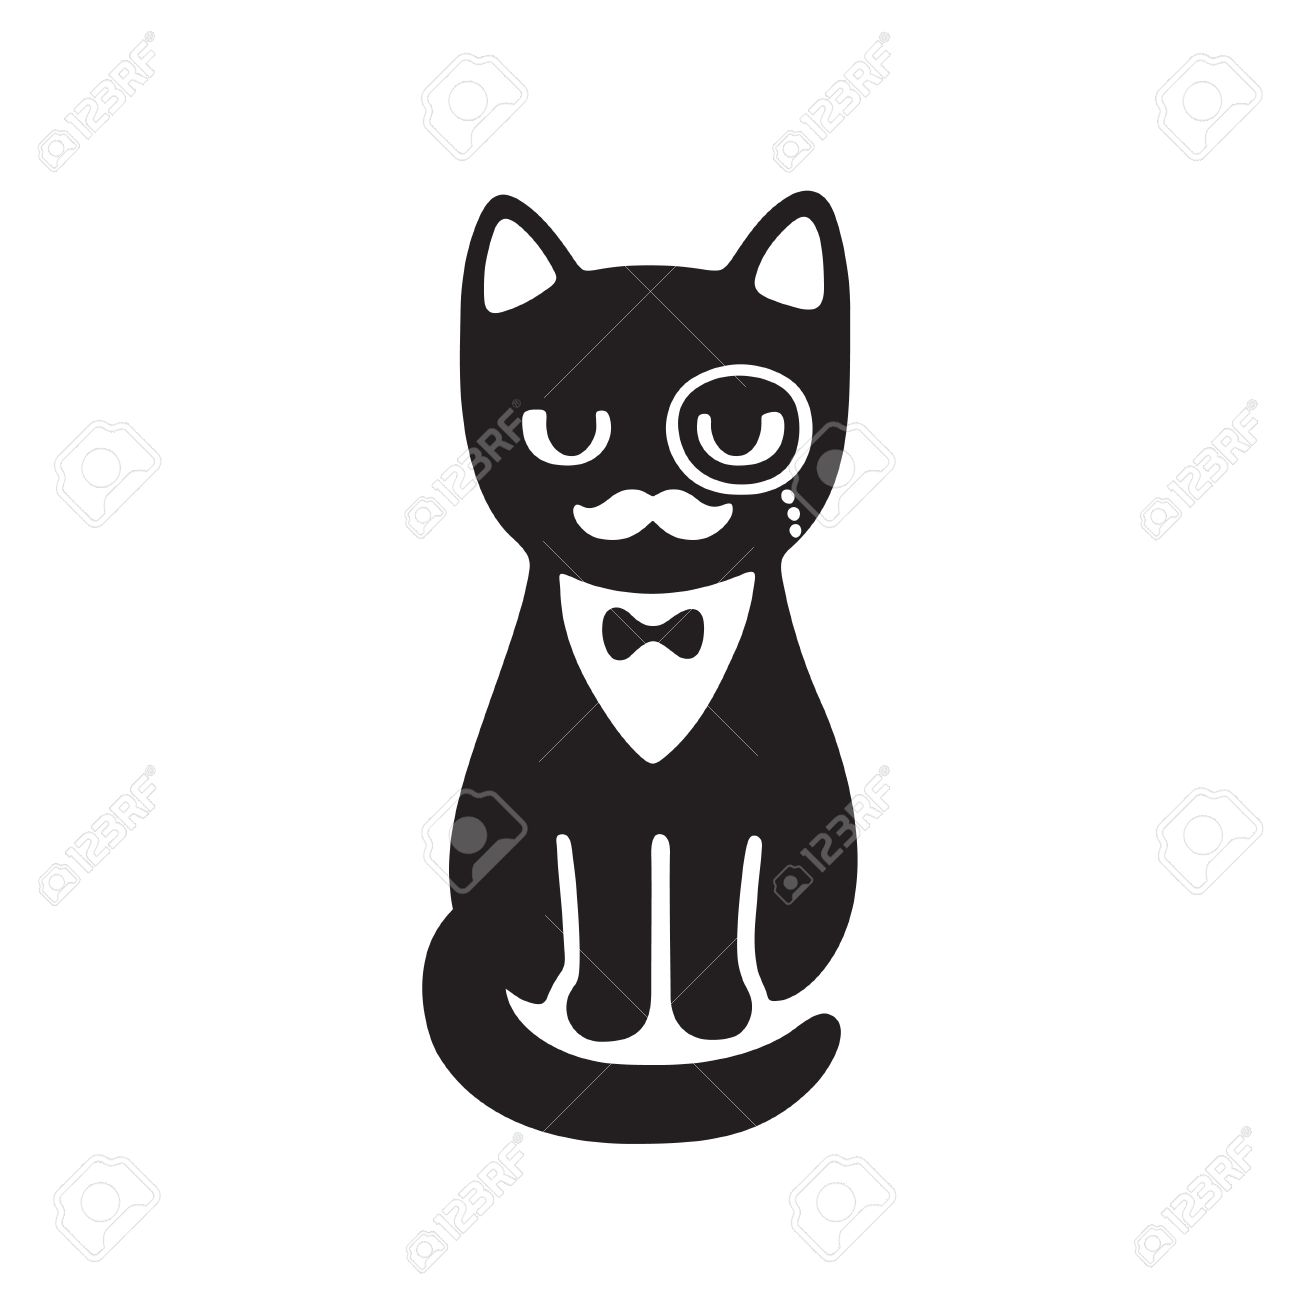 3aba1d395912 Tuxedo cat with monocle and bow tie. Funny cartoon vector drawing. Black  and white